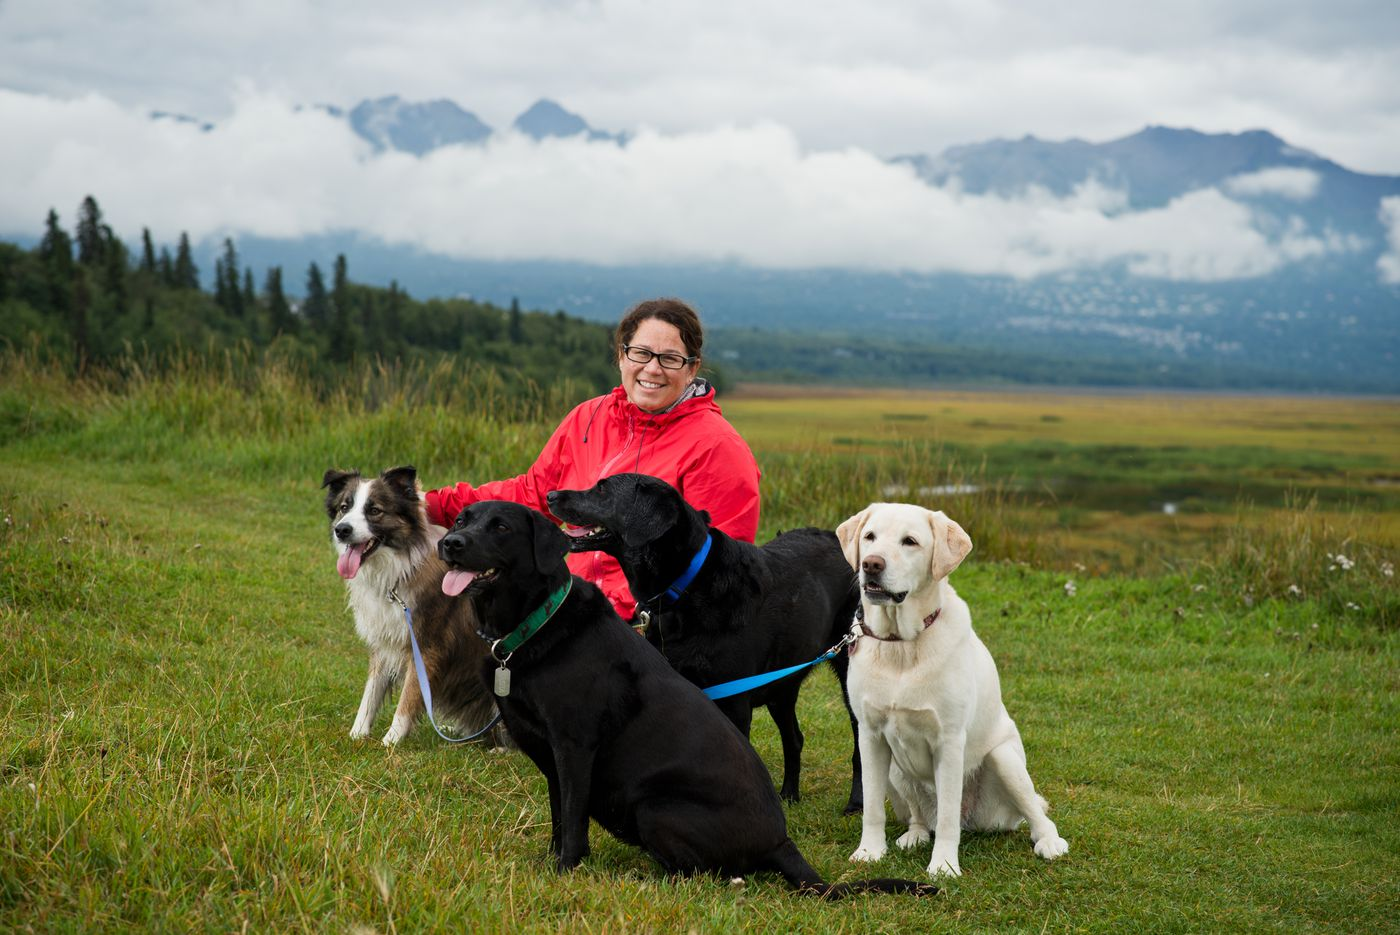 Tammie Jo Sanchez brought four dogs to Carr-Gottstein Park in South Anchorage on August 24, 2017. (Marc Lester / Alaska Dispatch News)